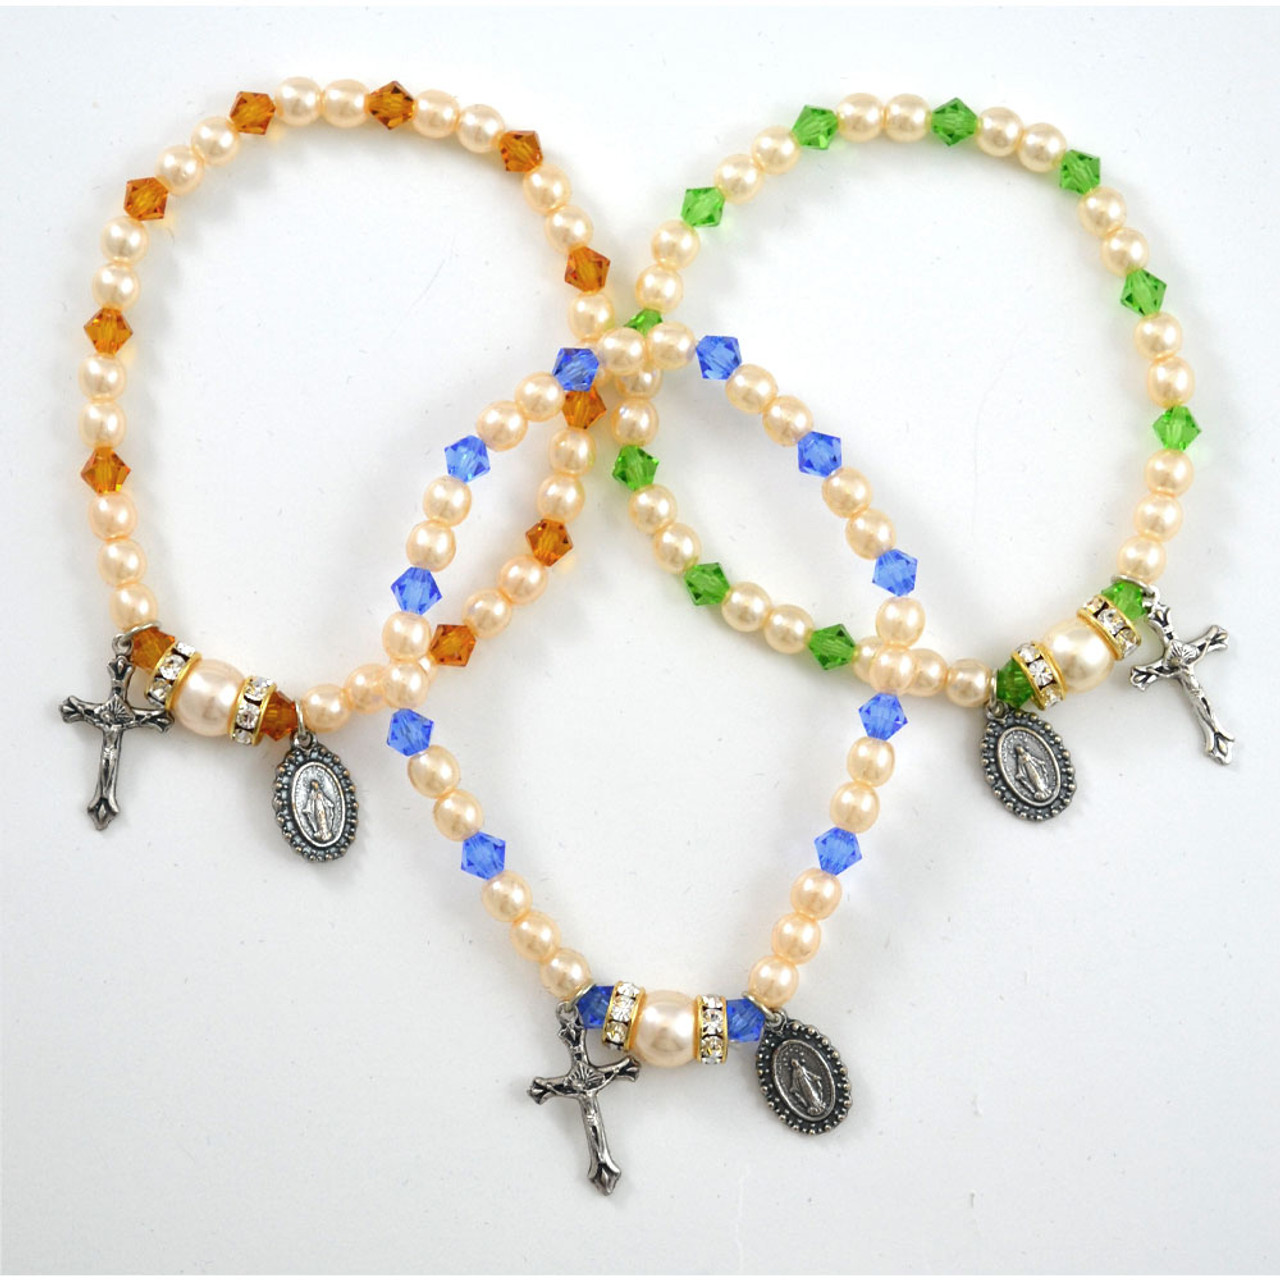 Birthstone Rosary Stretch Bracelets